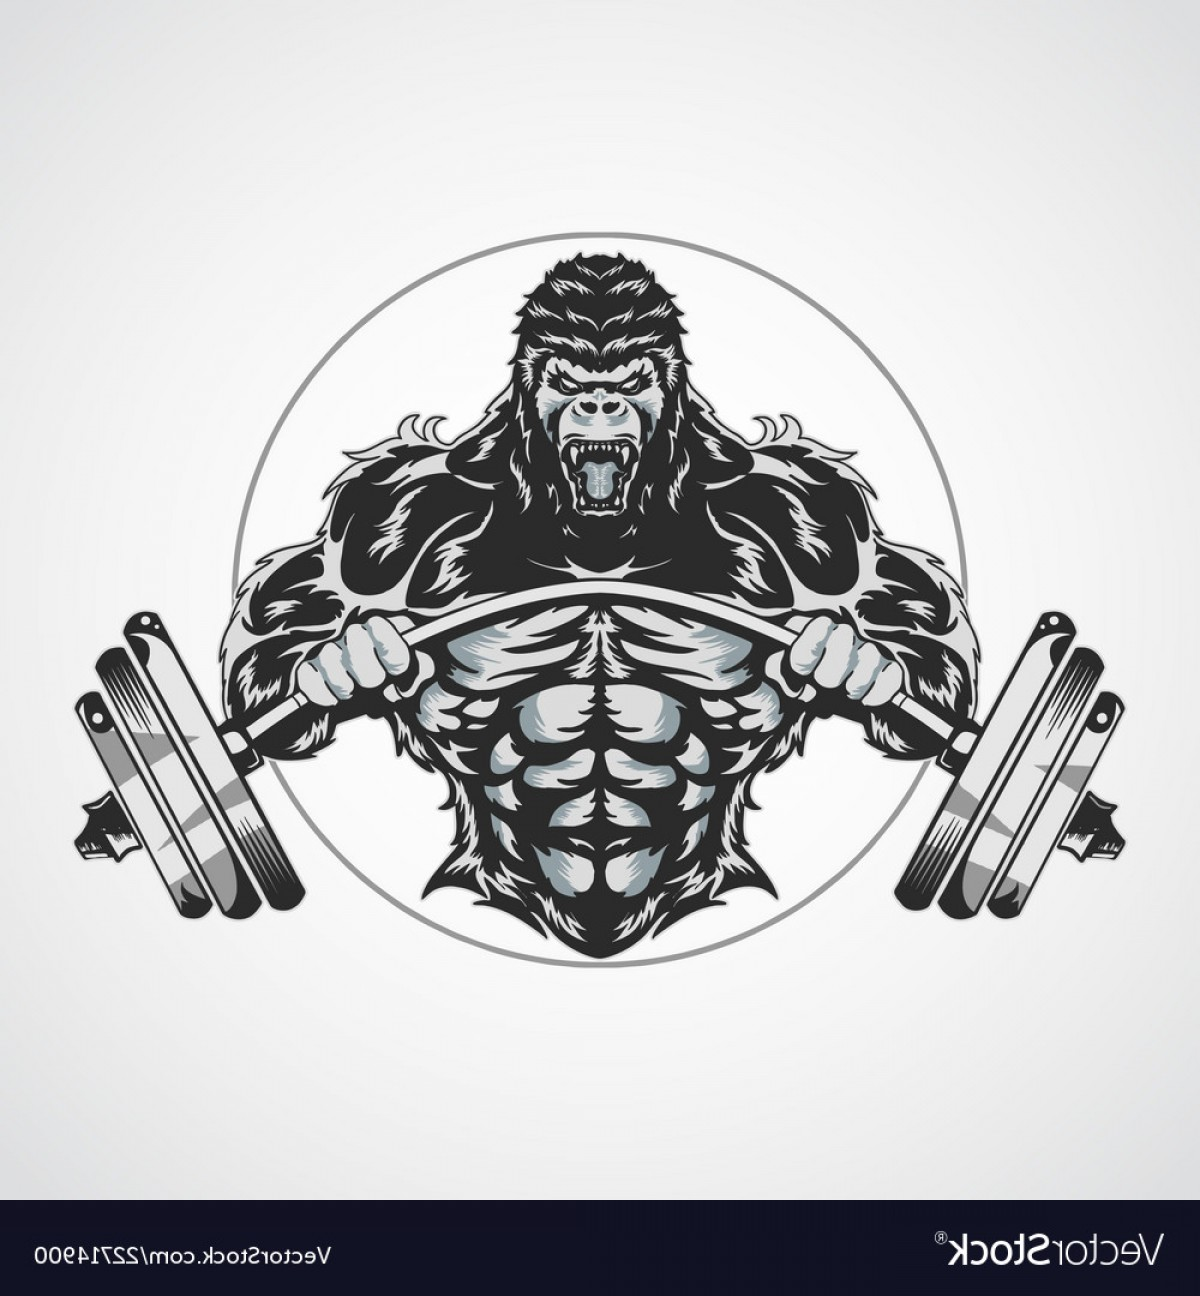 Gold Gym Vector: Gorilla Gym Symbol Logo Fitness Vector